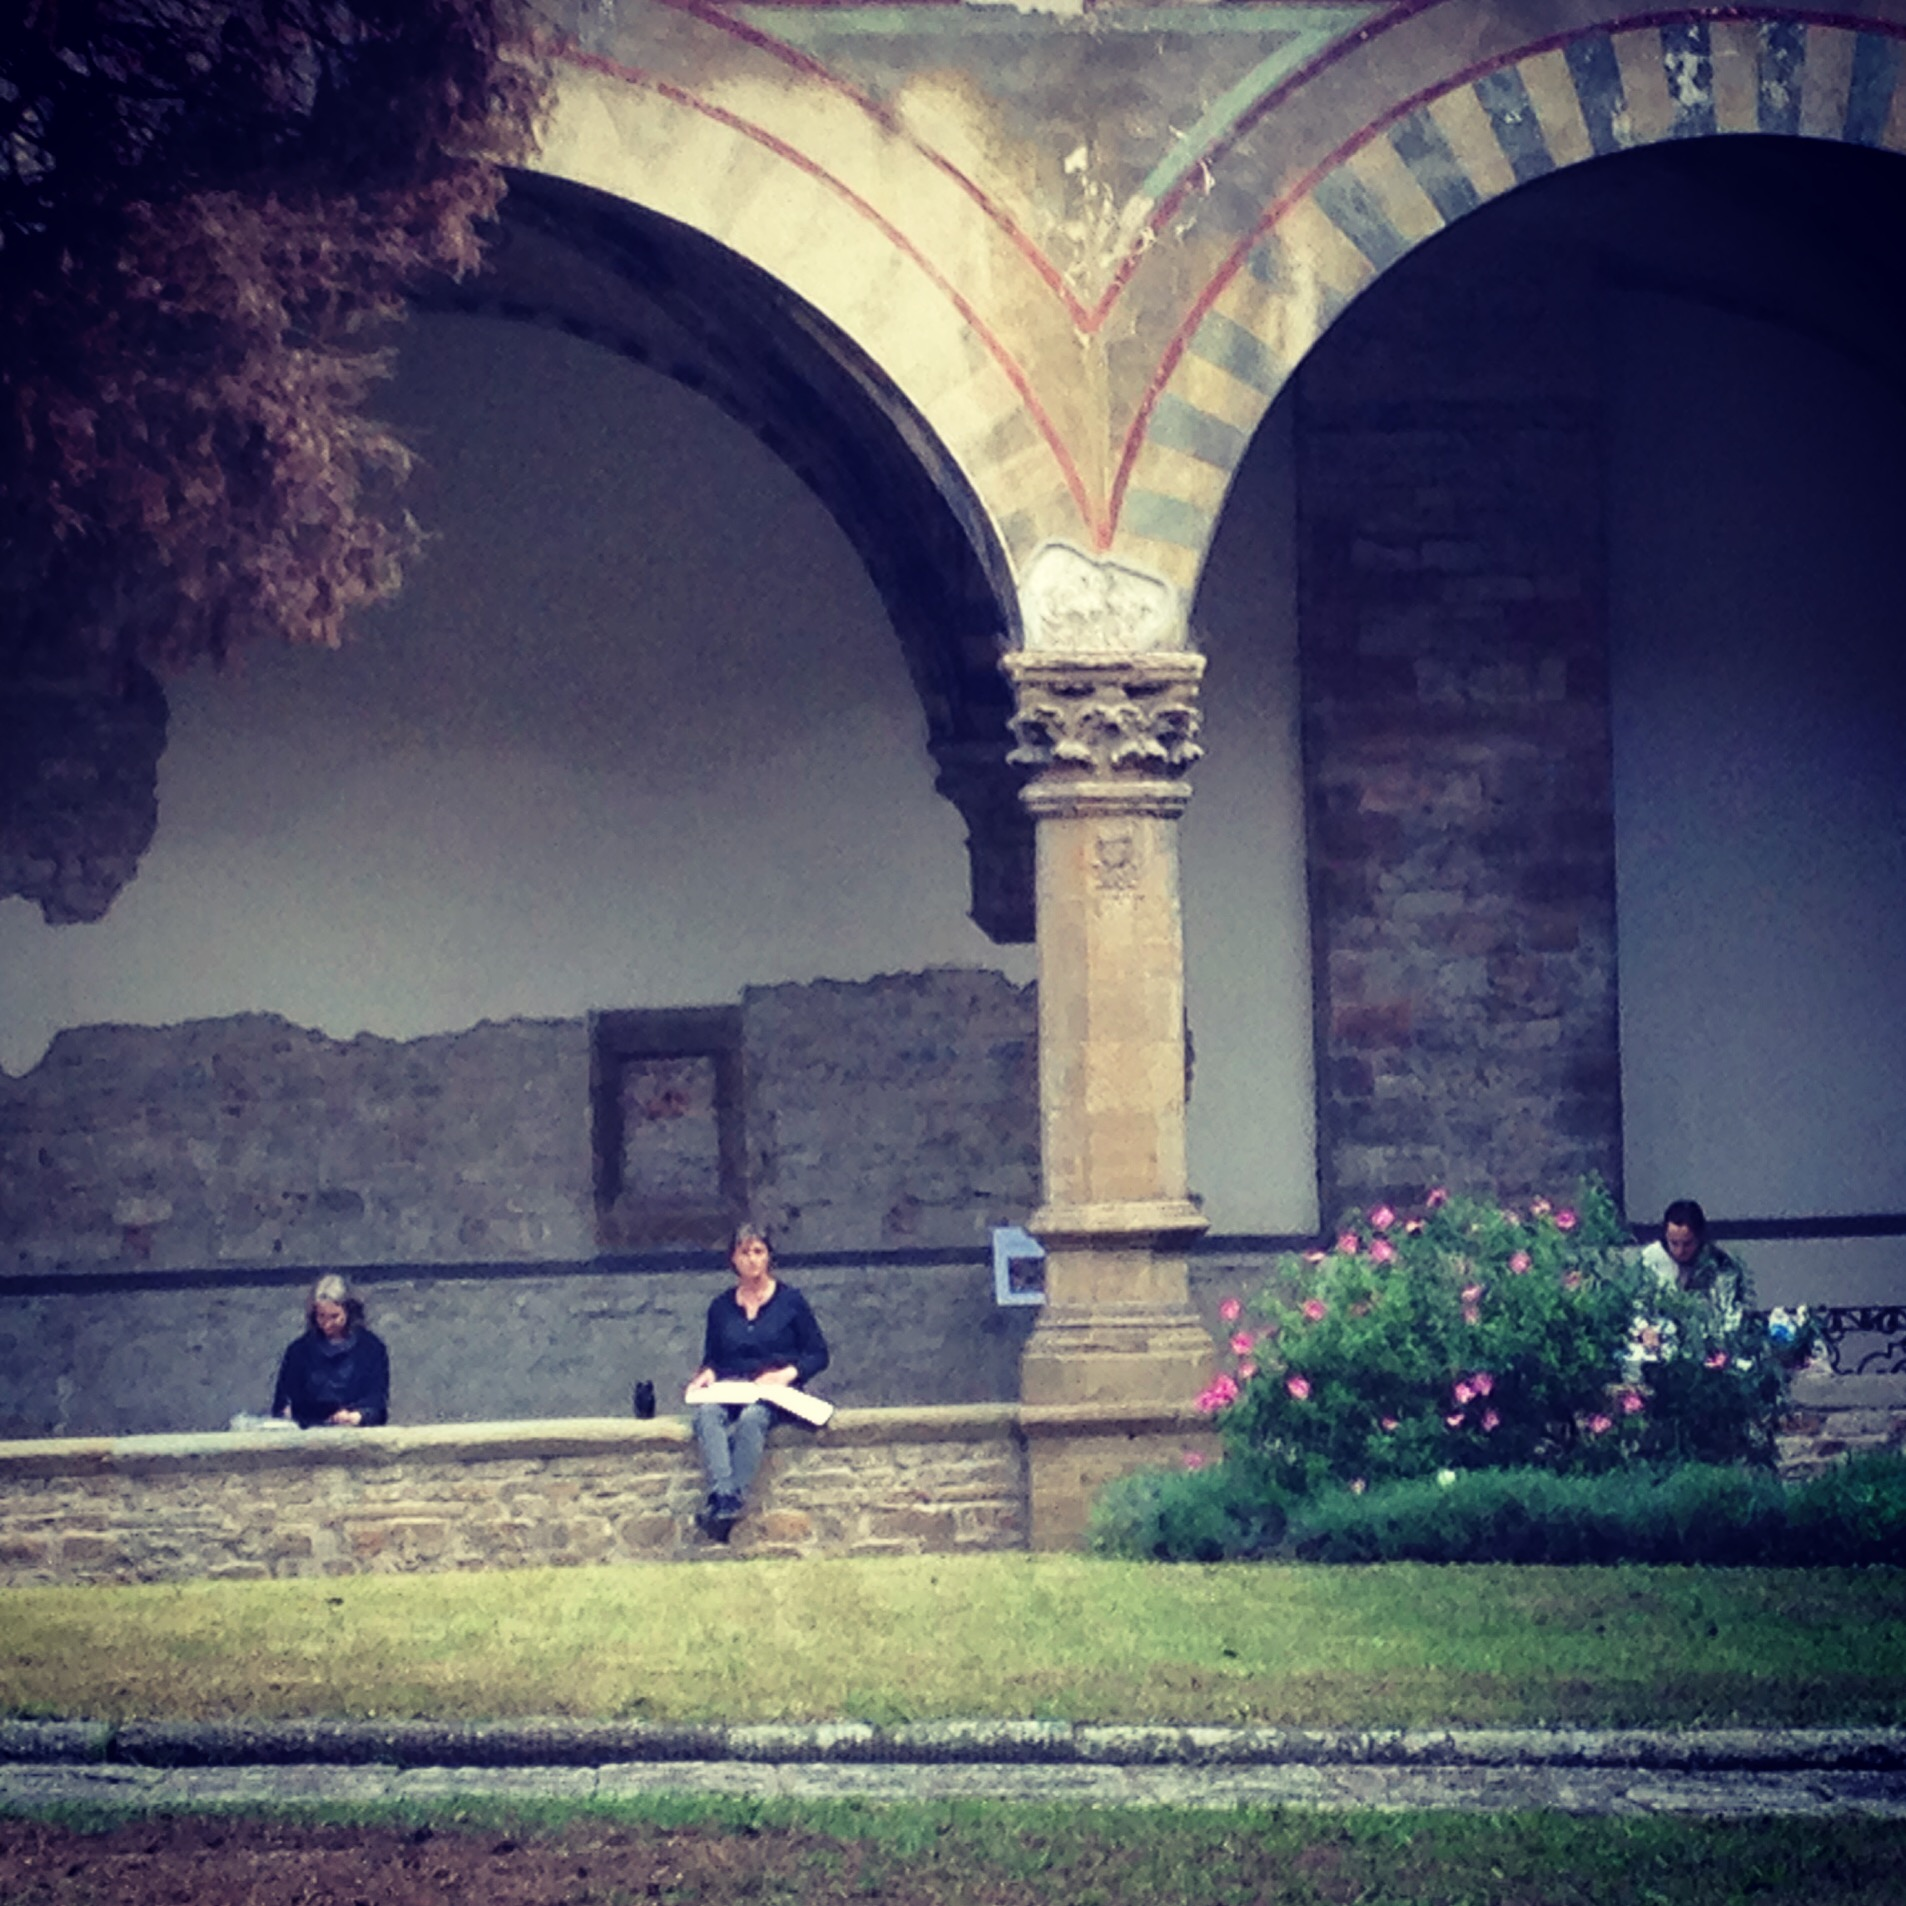 The Cloisters of Santa Maria Novella